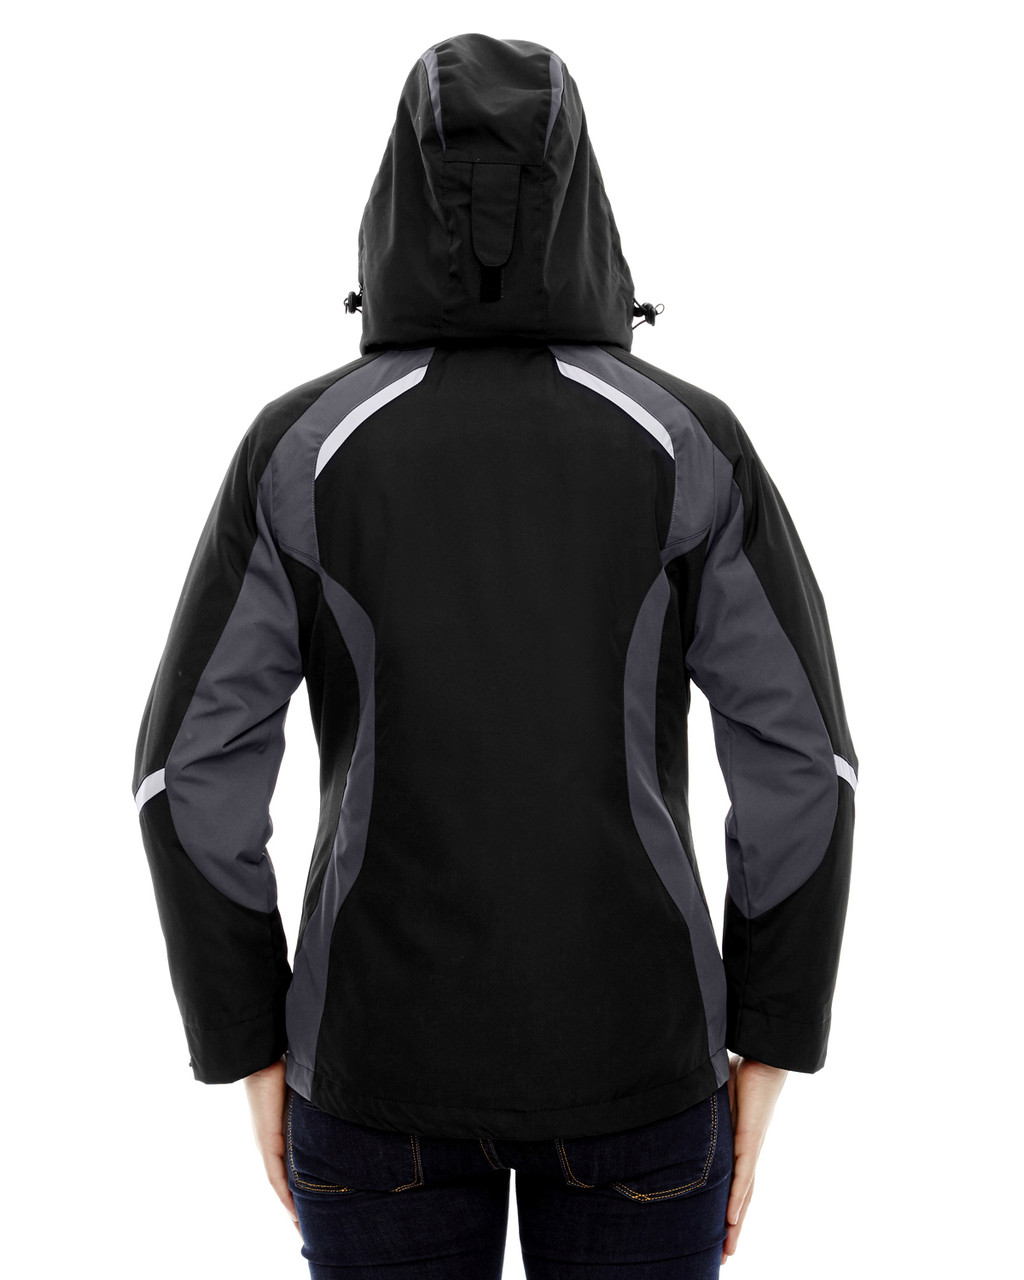 Black, Back - 78195 Ash City - North End Ladies' Height 3-in-1 Jacket with Insulated Liner | Blankclothing.ca